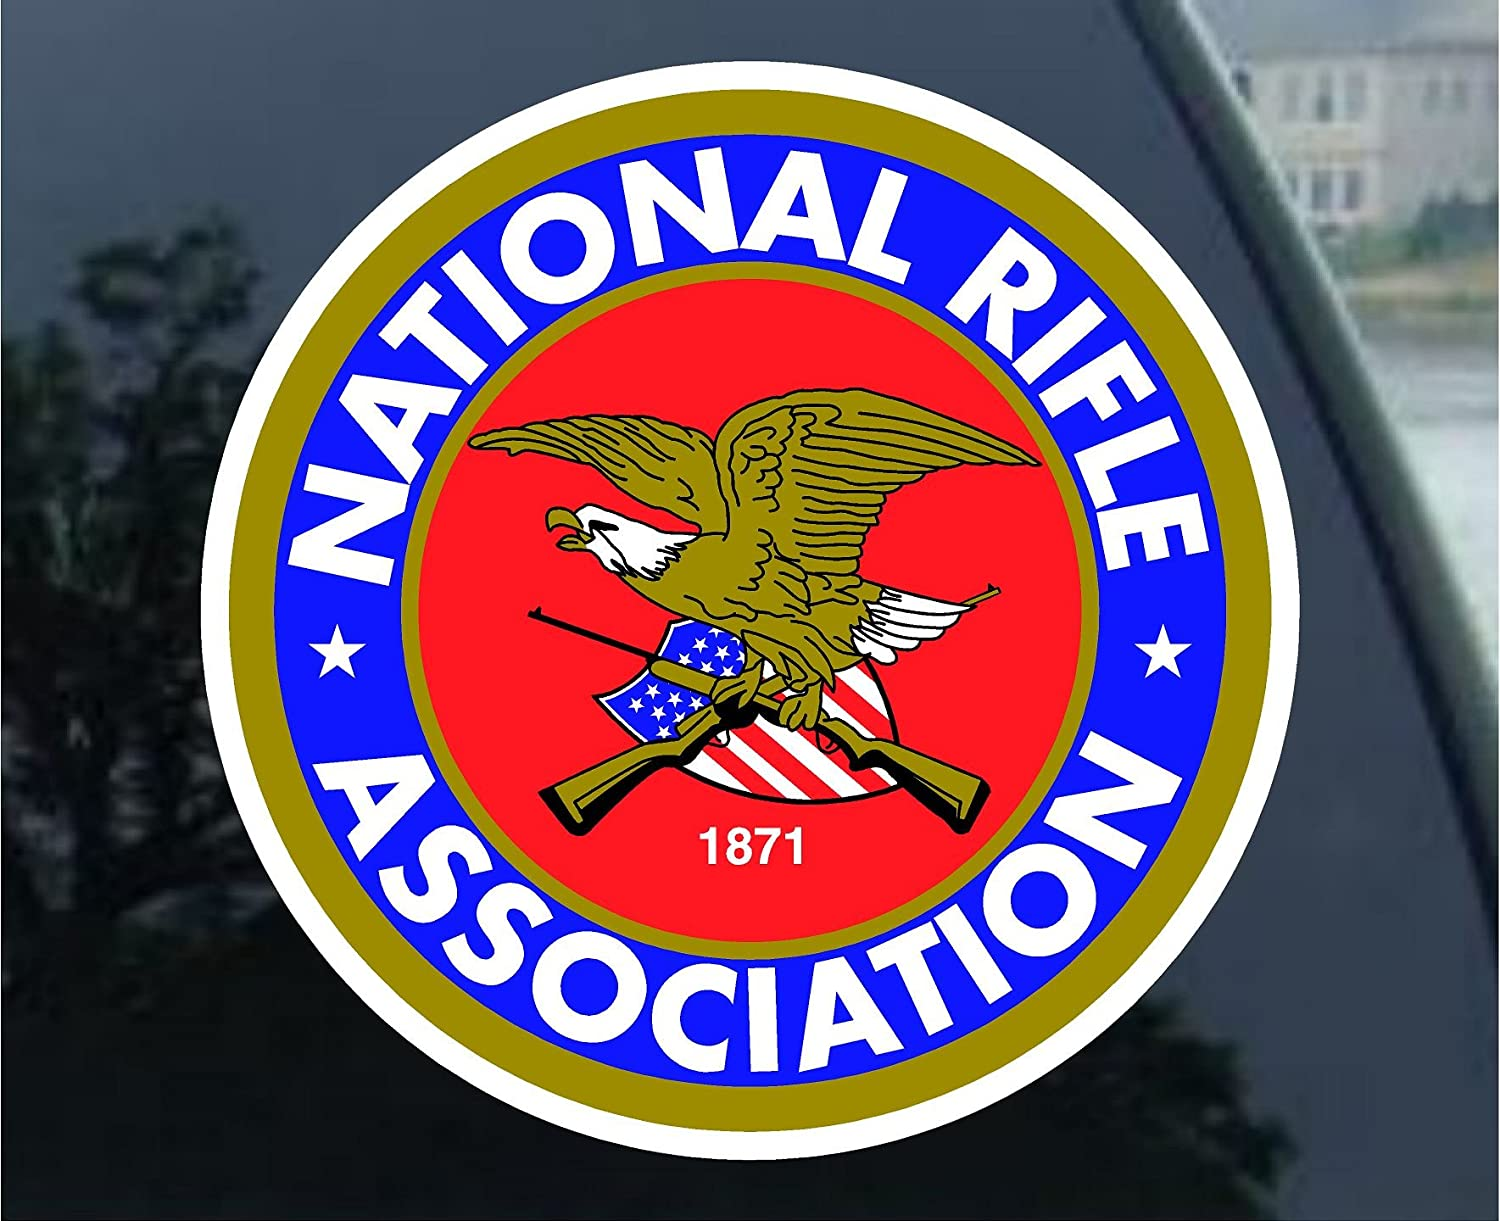 The Original NRA Stickers Bumper Stickers Pack Decal Car Truck Computer Laptop Stickers National Riffle Association Armed Property Home Business Owner Sign Warning 17PCS Pack